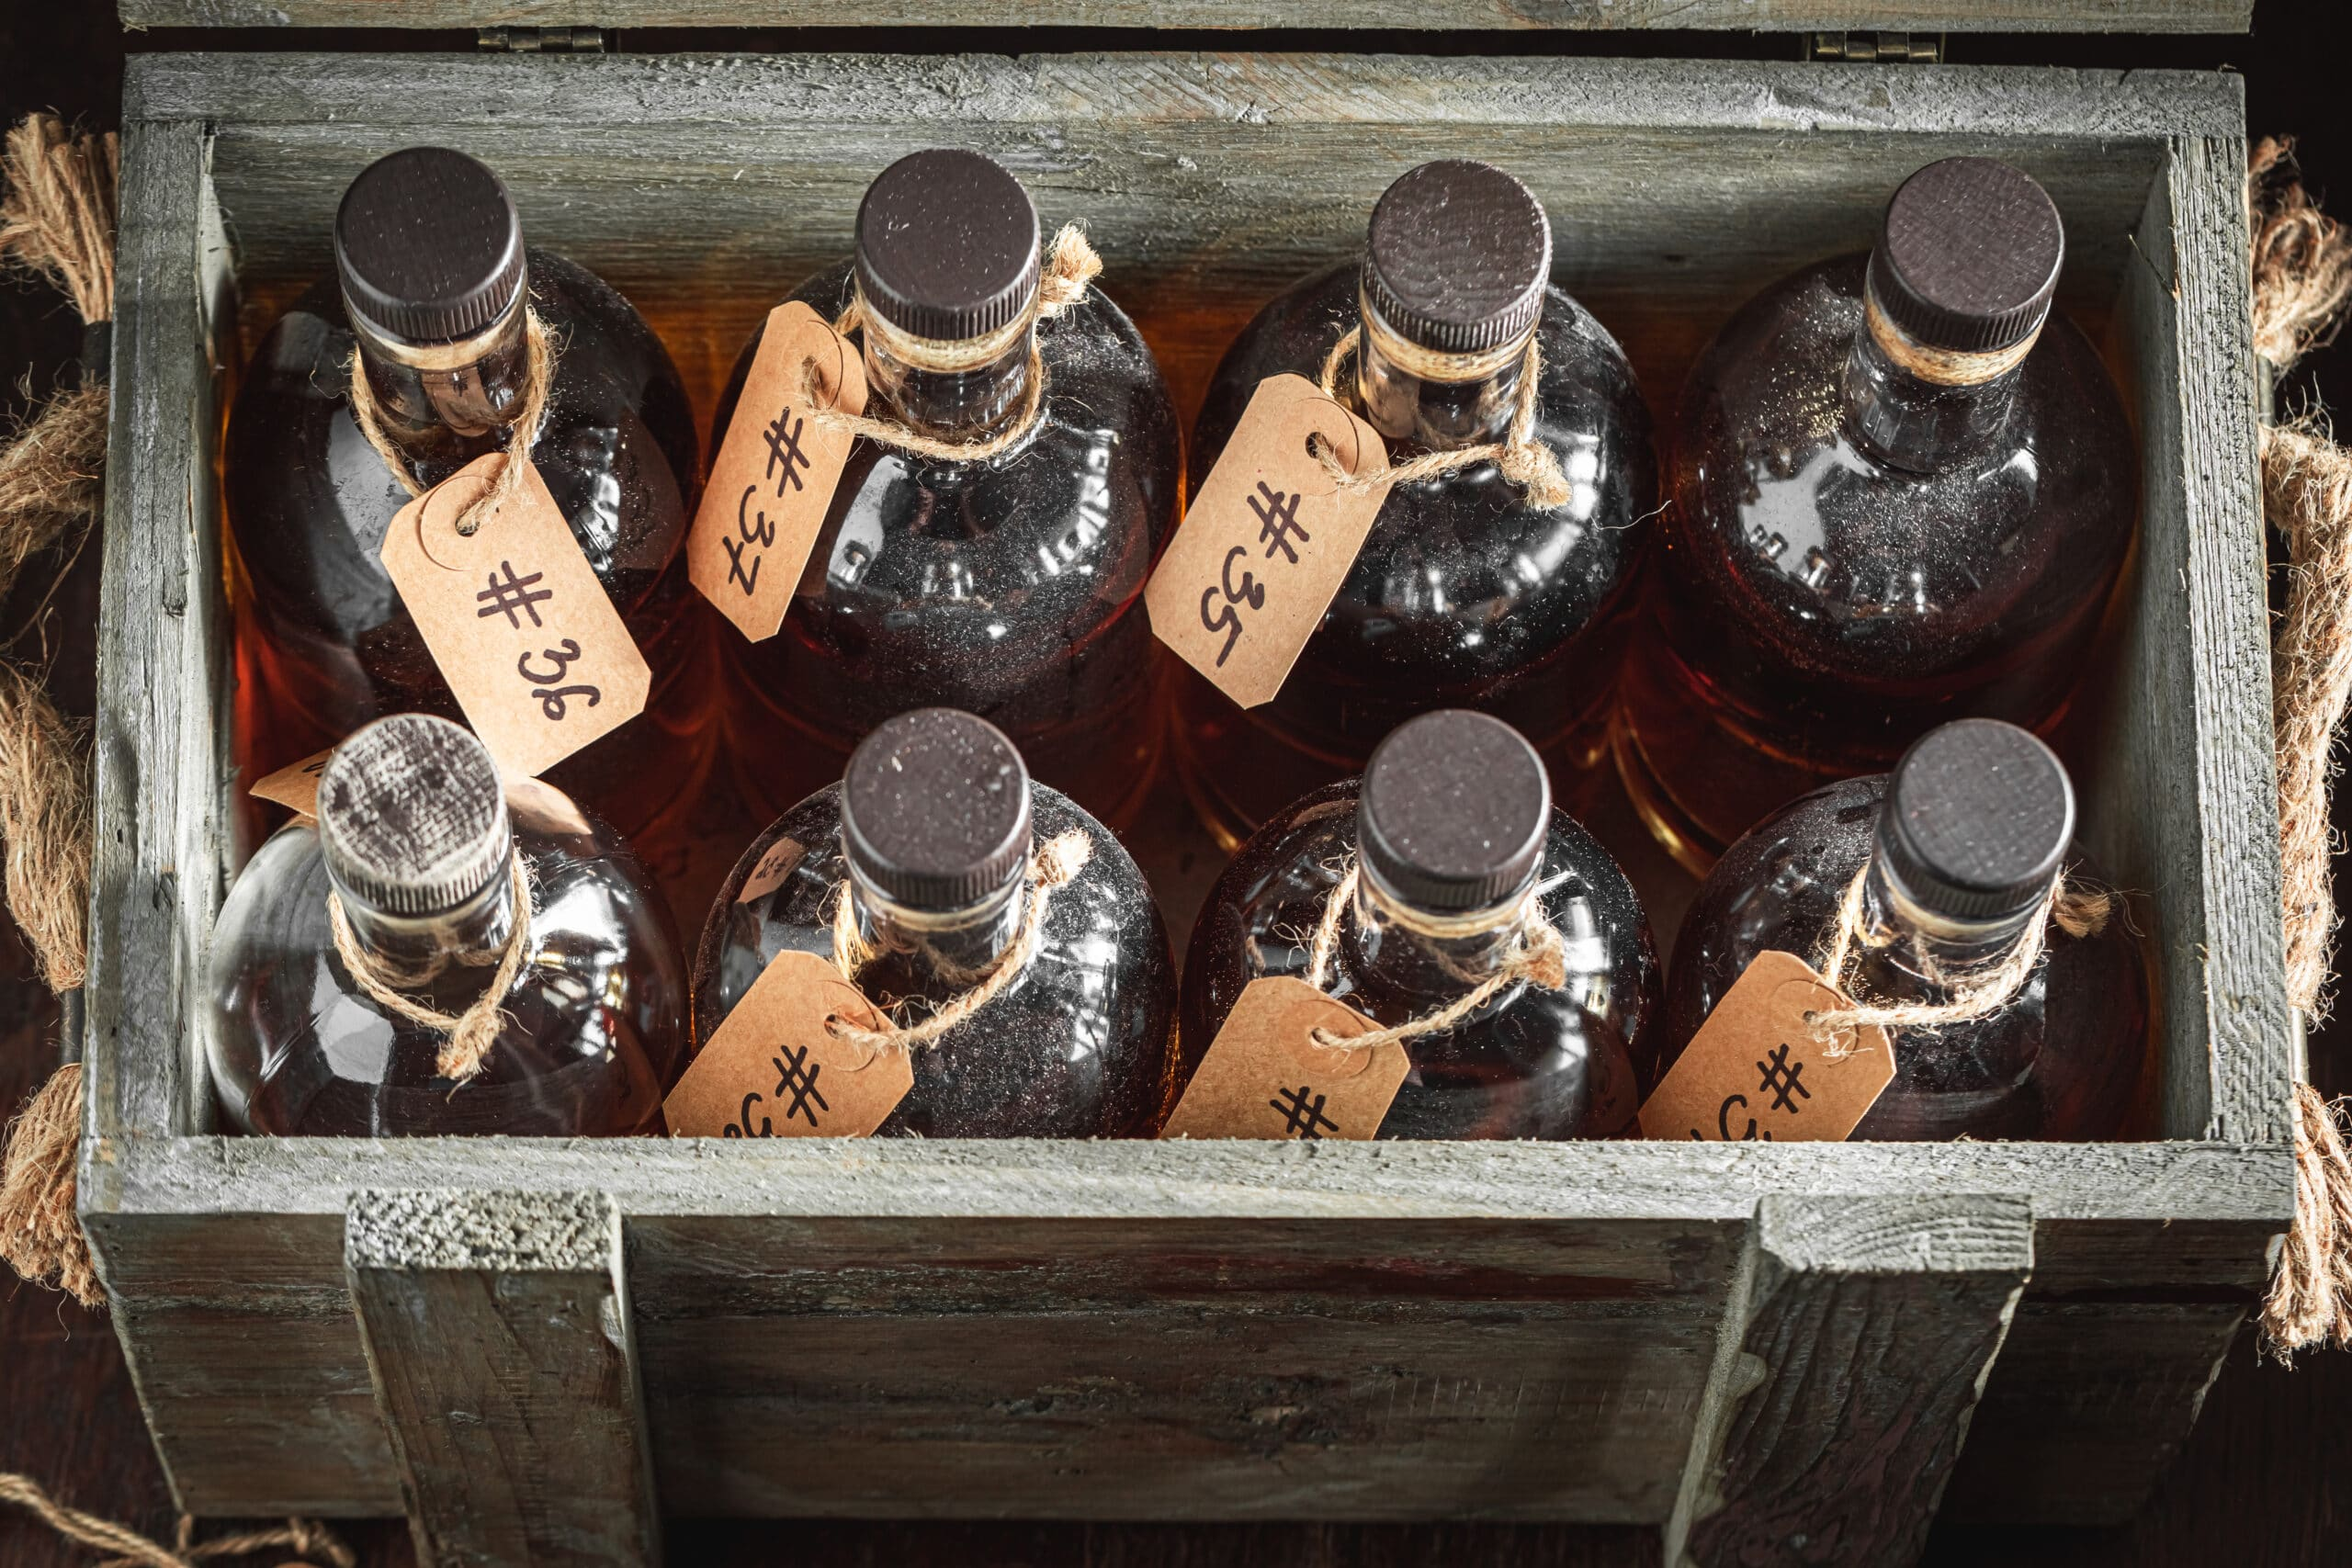 Hand crafted whisky on wooden box with bottles from distillery